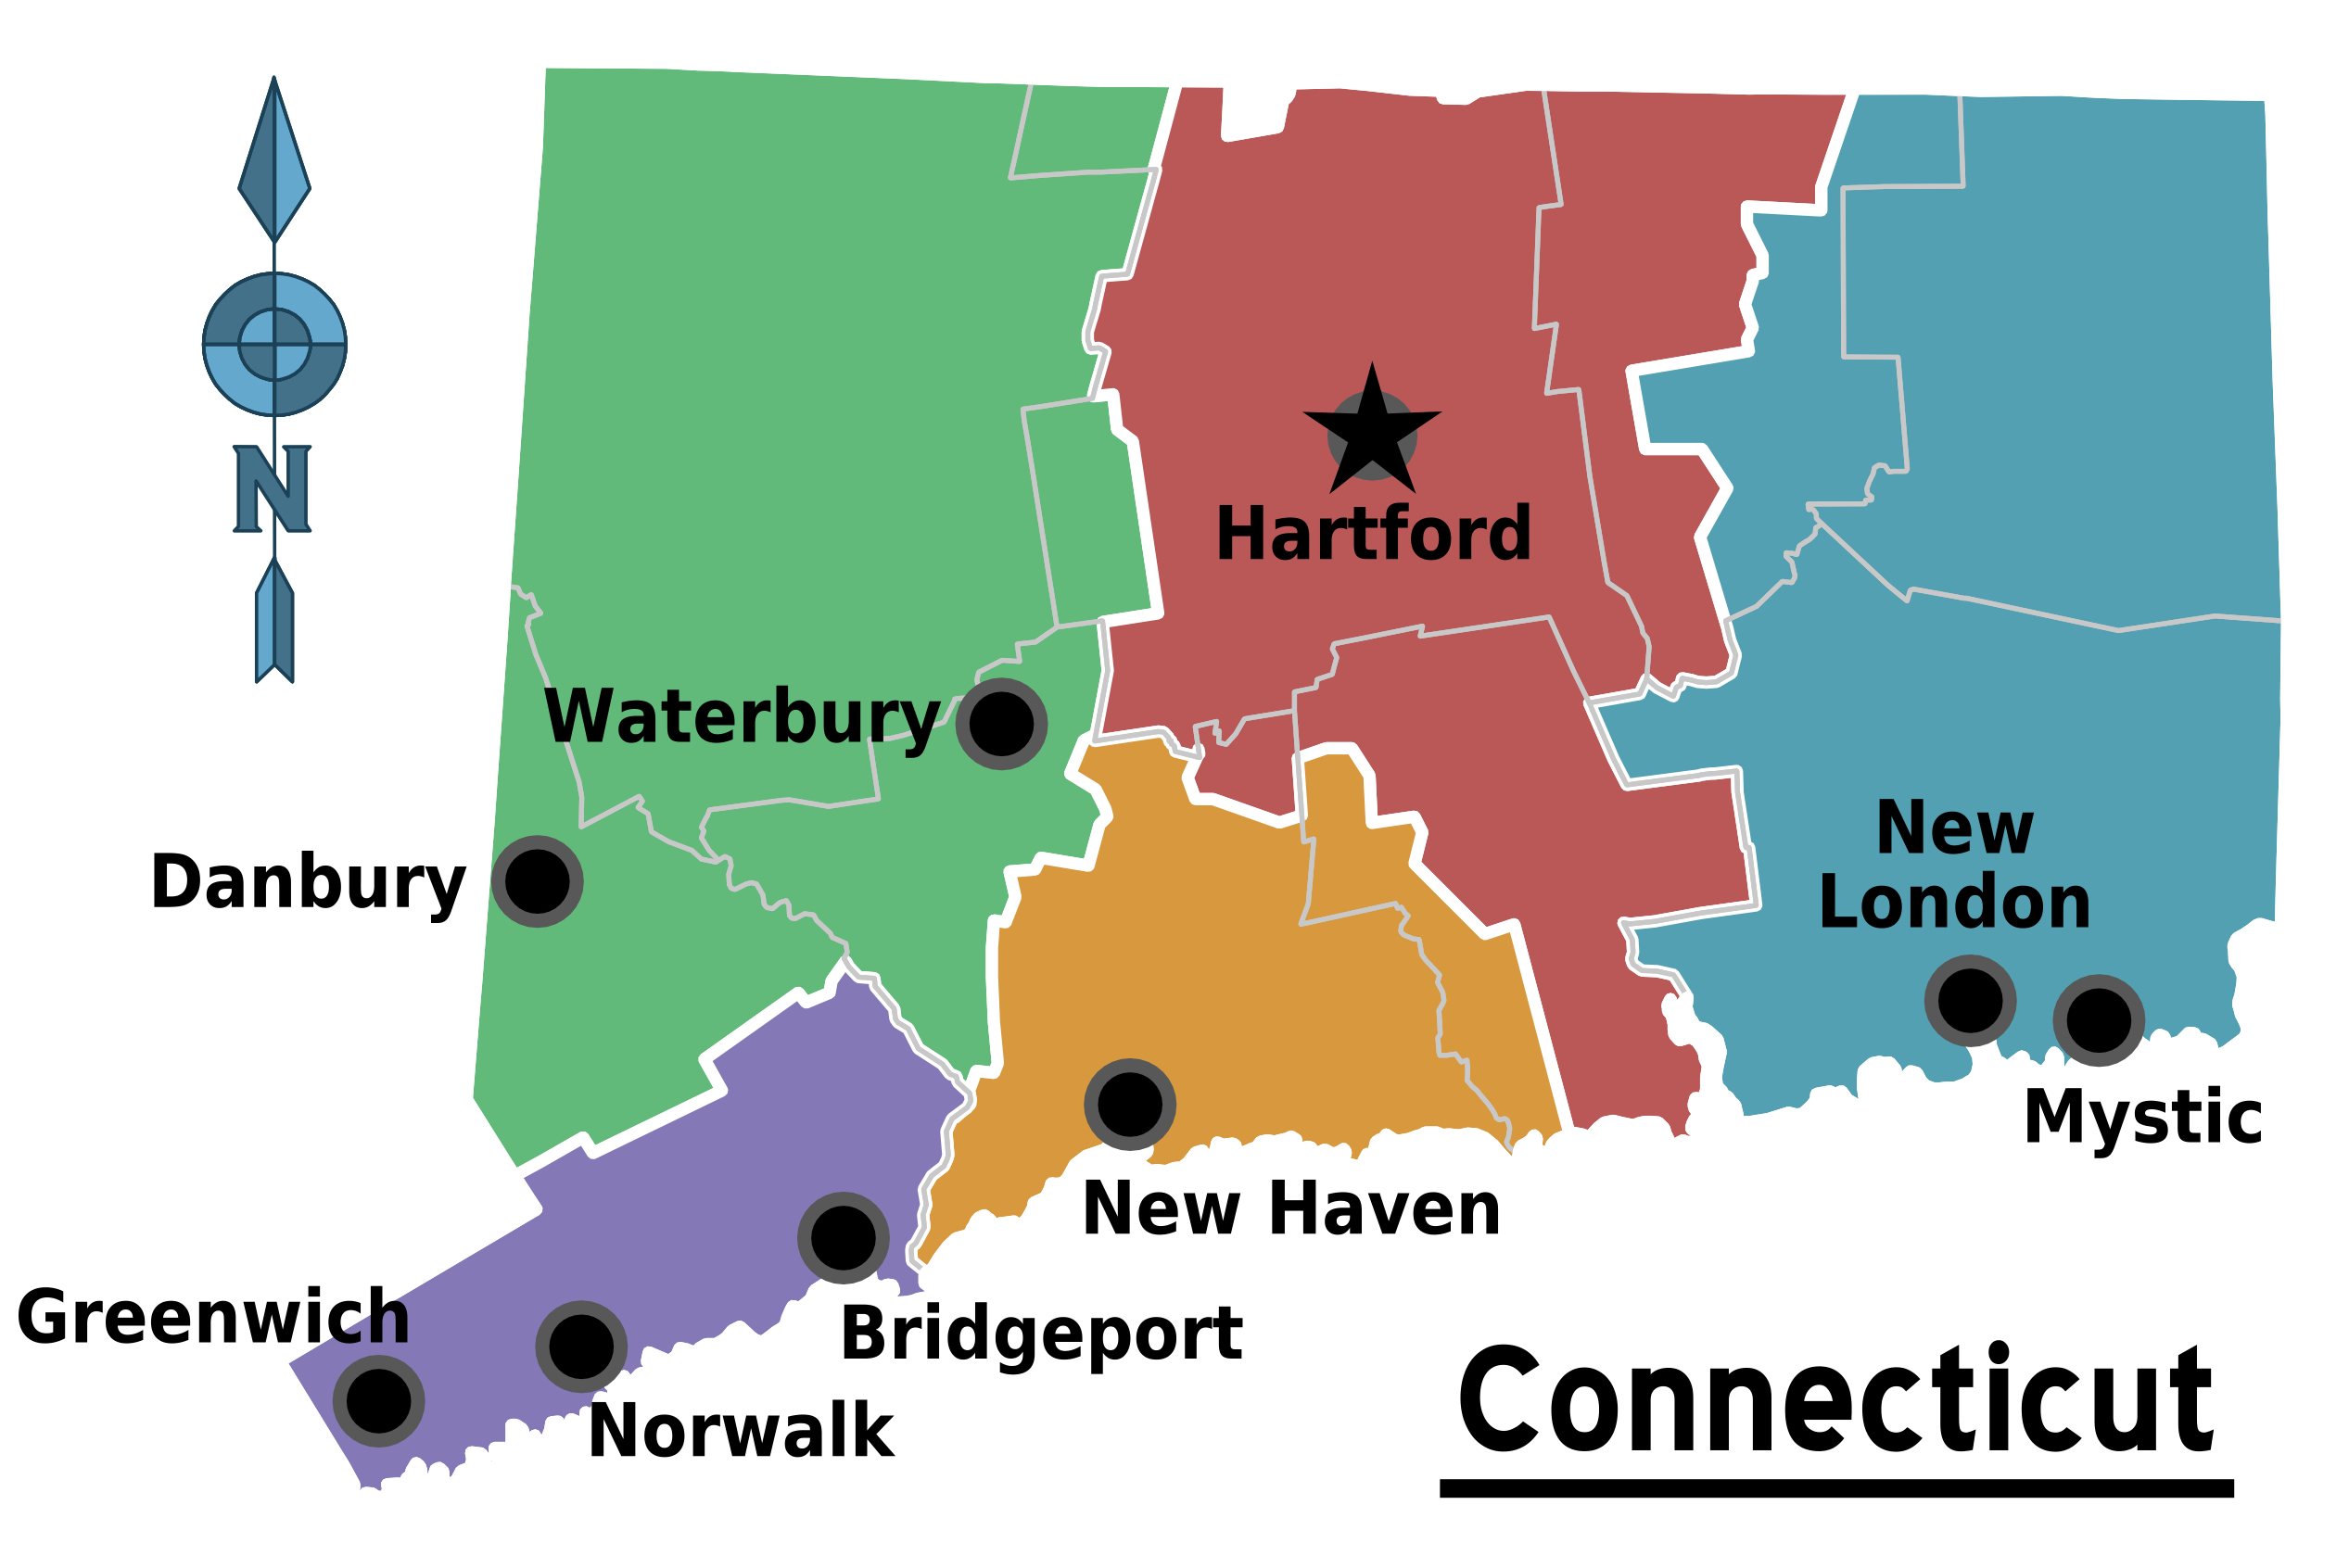 File:Map of Connecticut Regions.png - Wikimedia Commons